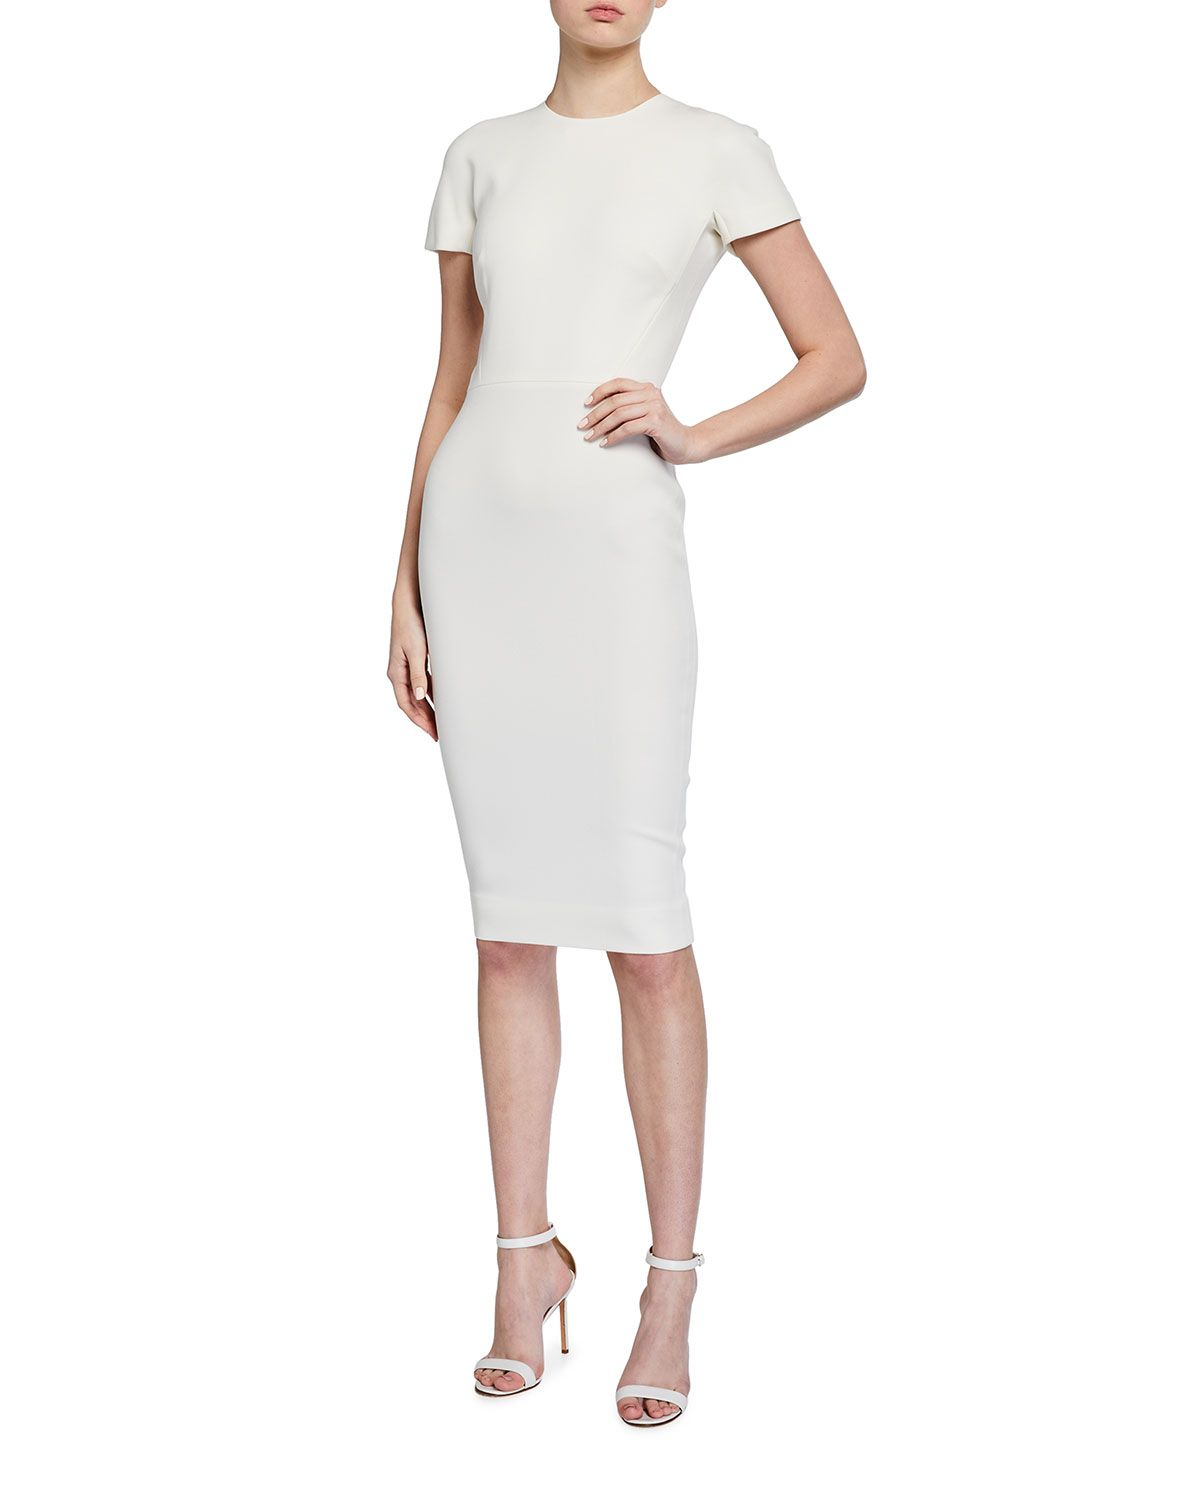 Victoria Beckham Fitted T Shirt Dress In 2021 Victoria Beckham Dress Dresses T Shirt Dress [ 1500 x 1200 Pixel ]